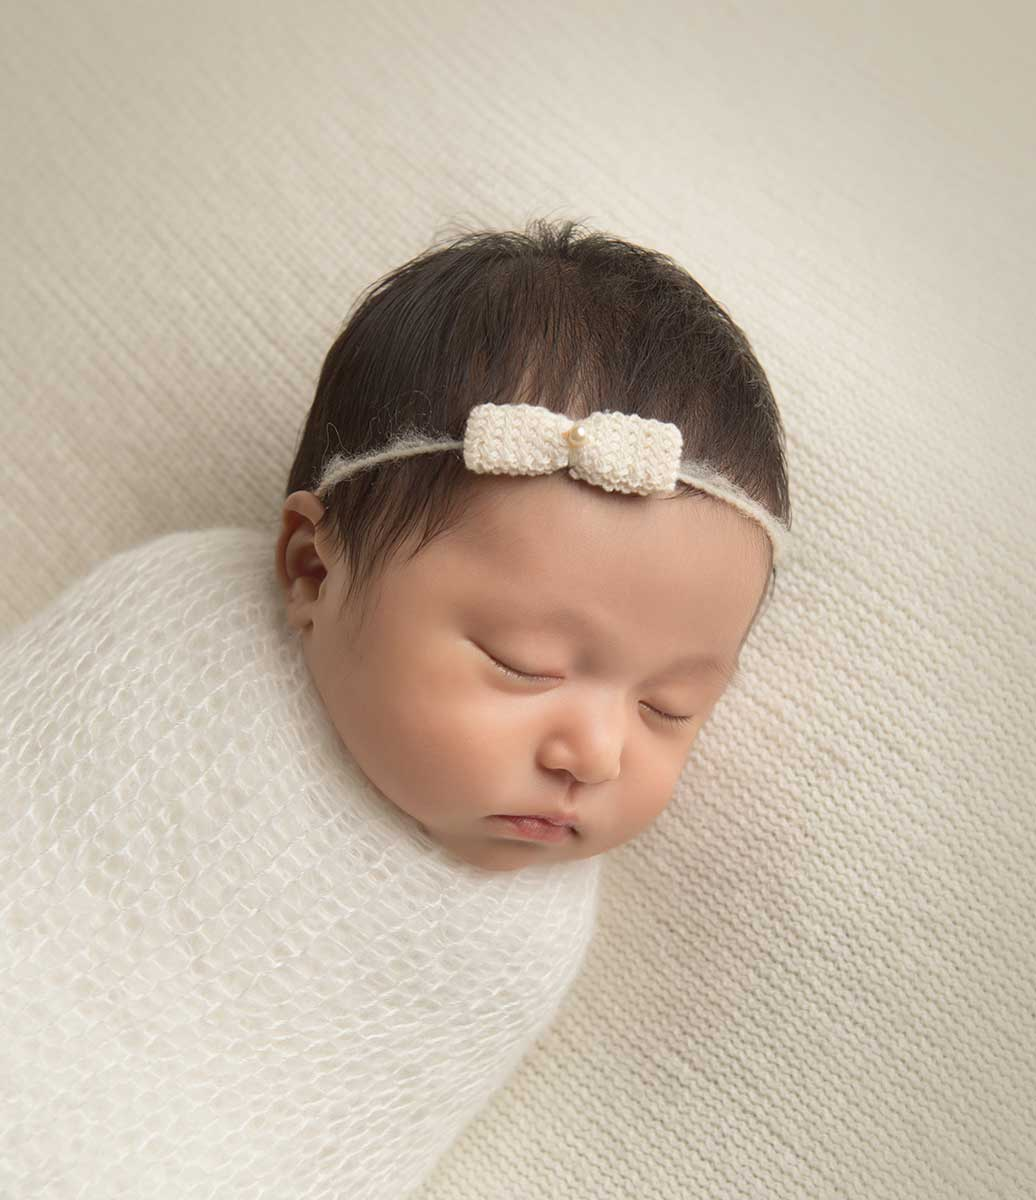 Cute newborn girl wearing a headband sleeping on a white blanket